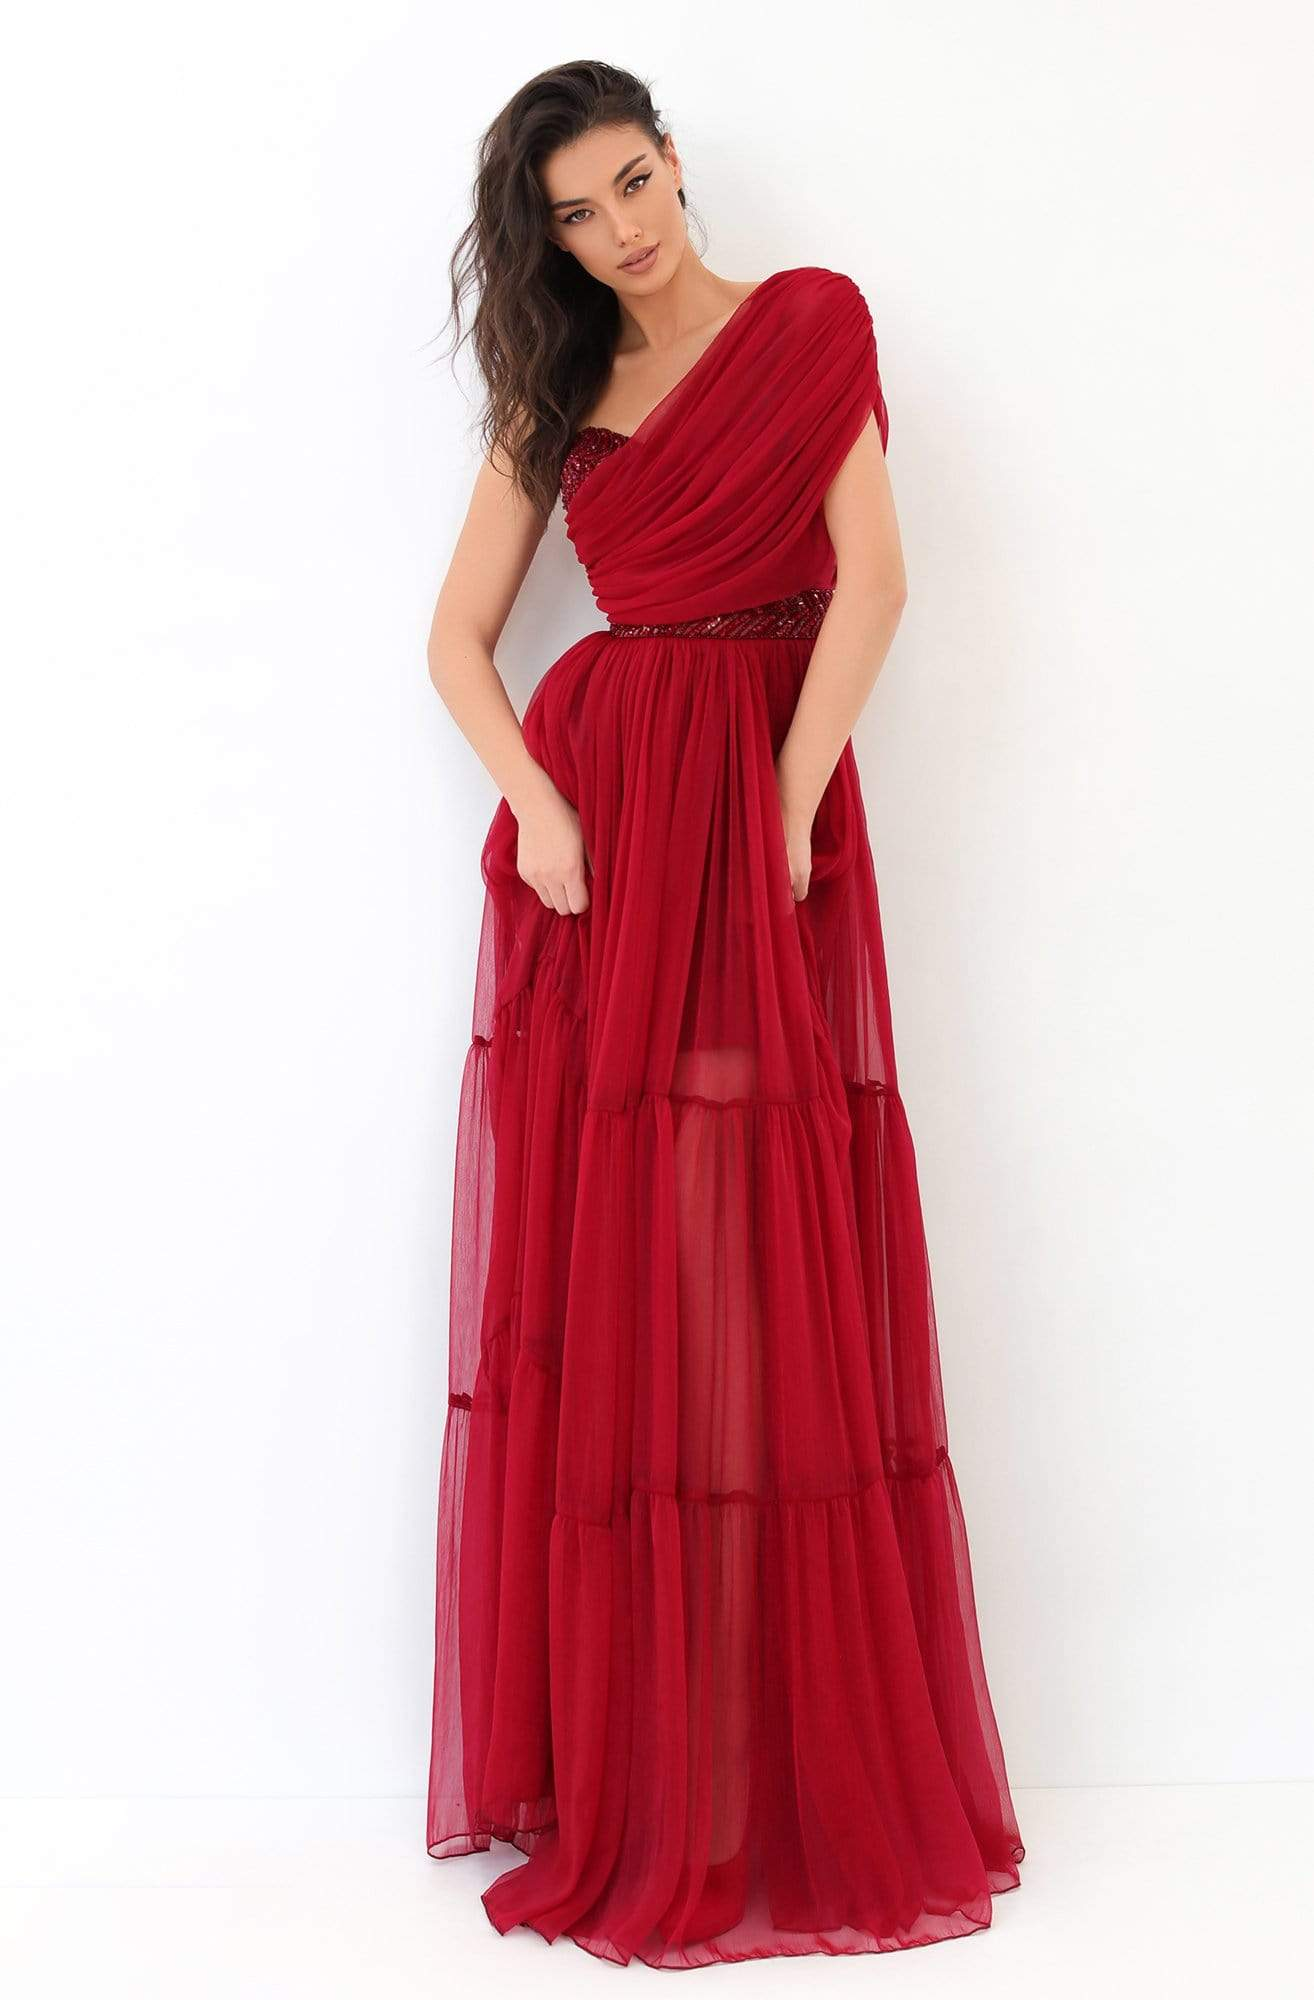 Tarik Ediz - 93814 Ruched Asymmetrical A-Line Dress In Red